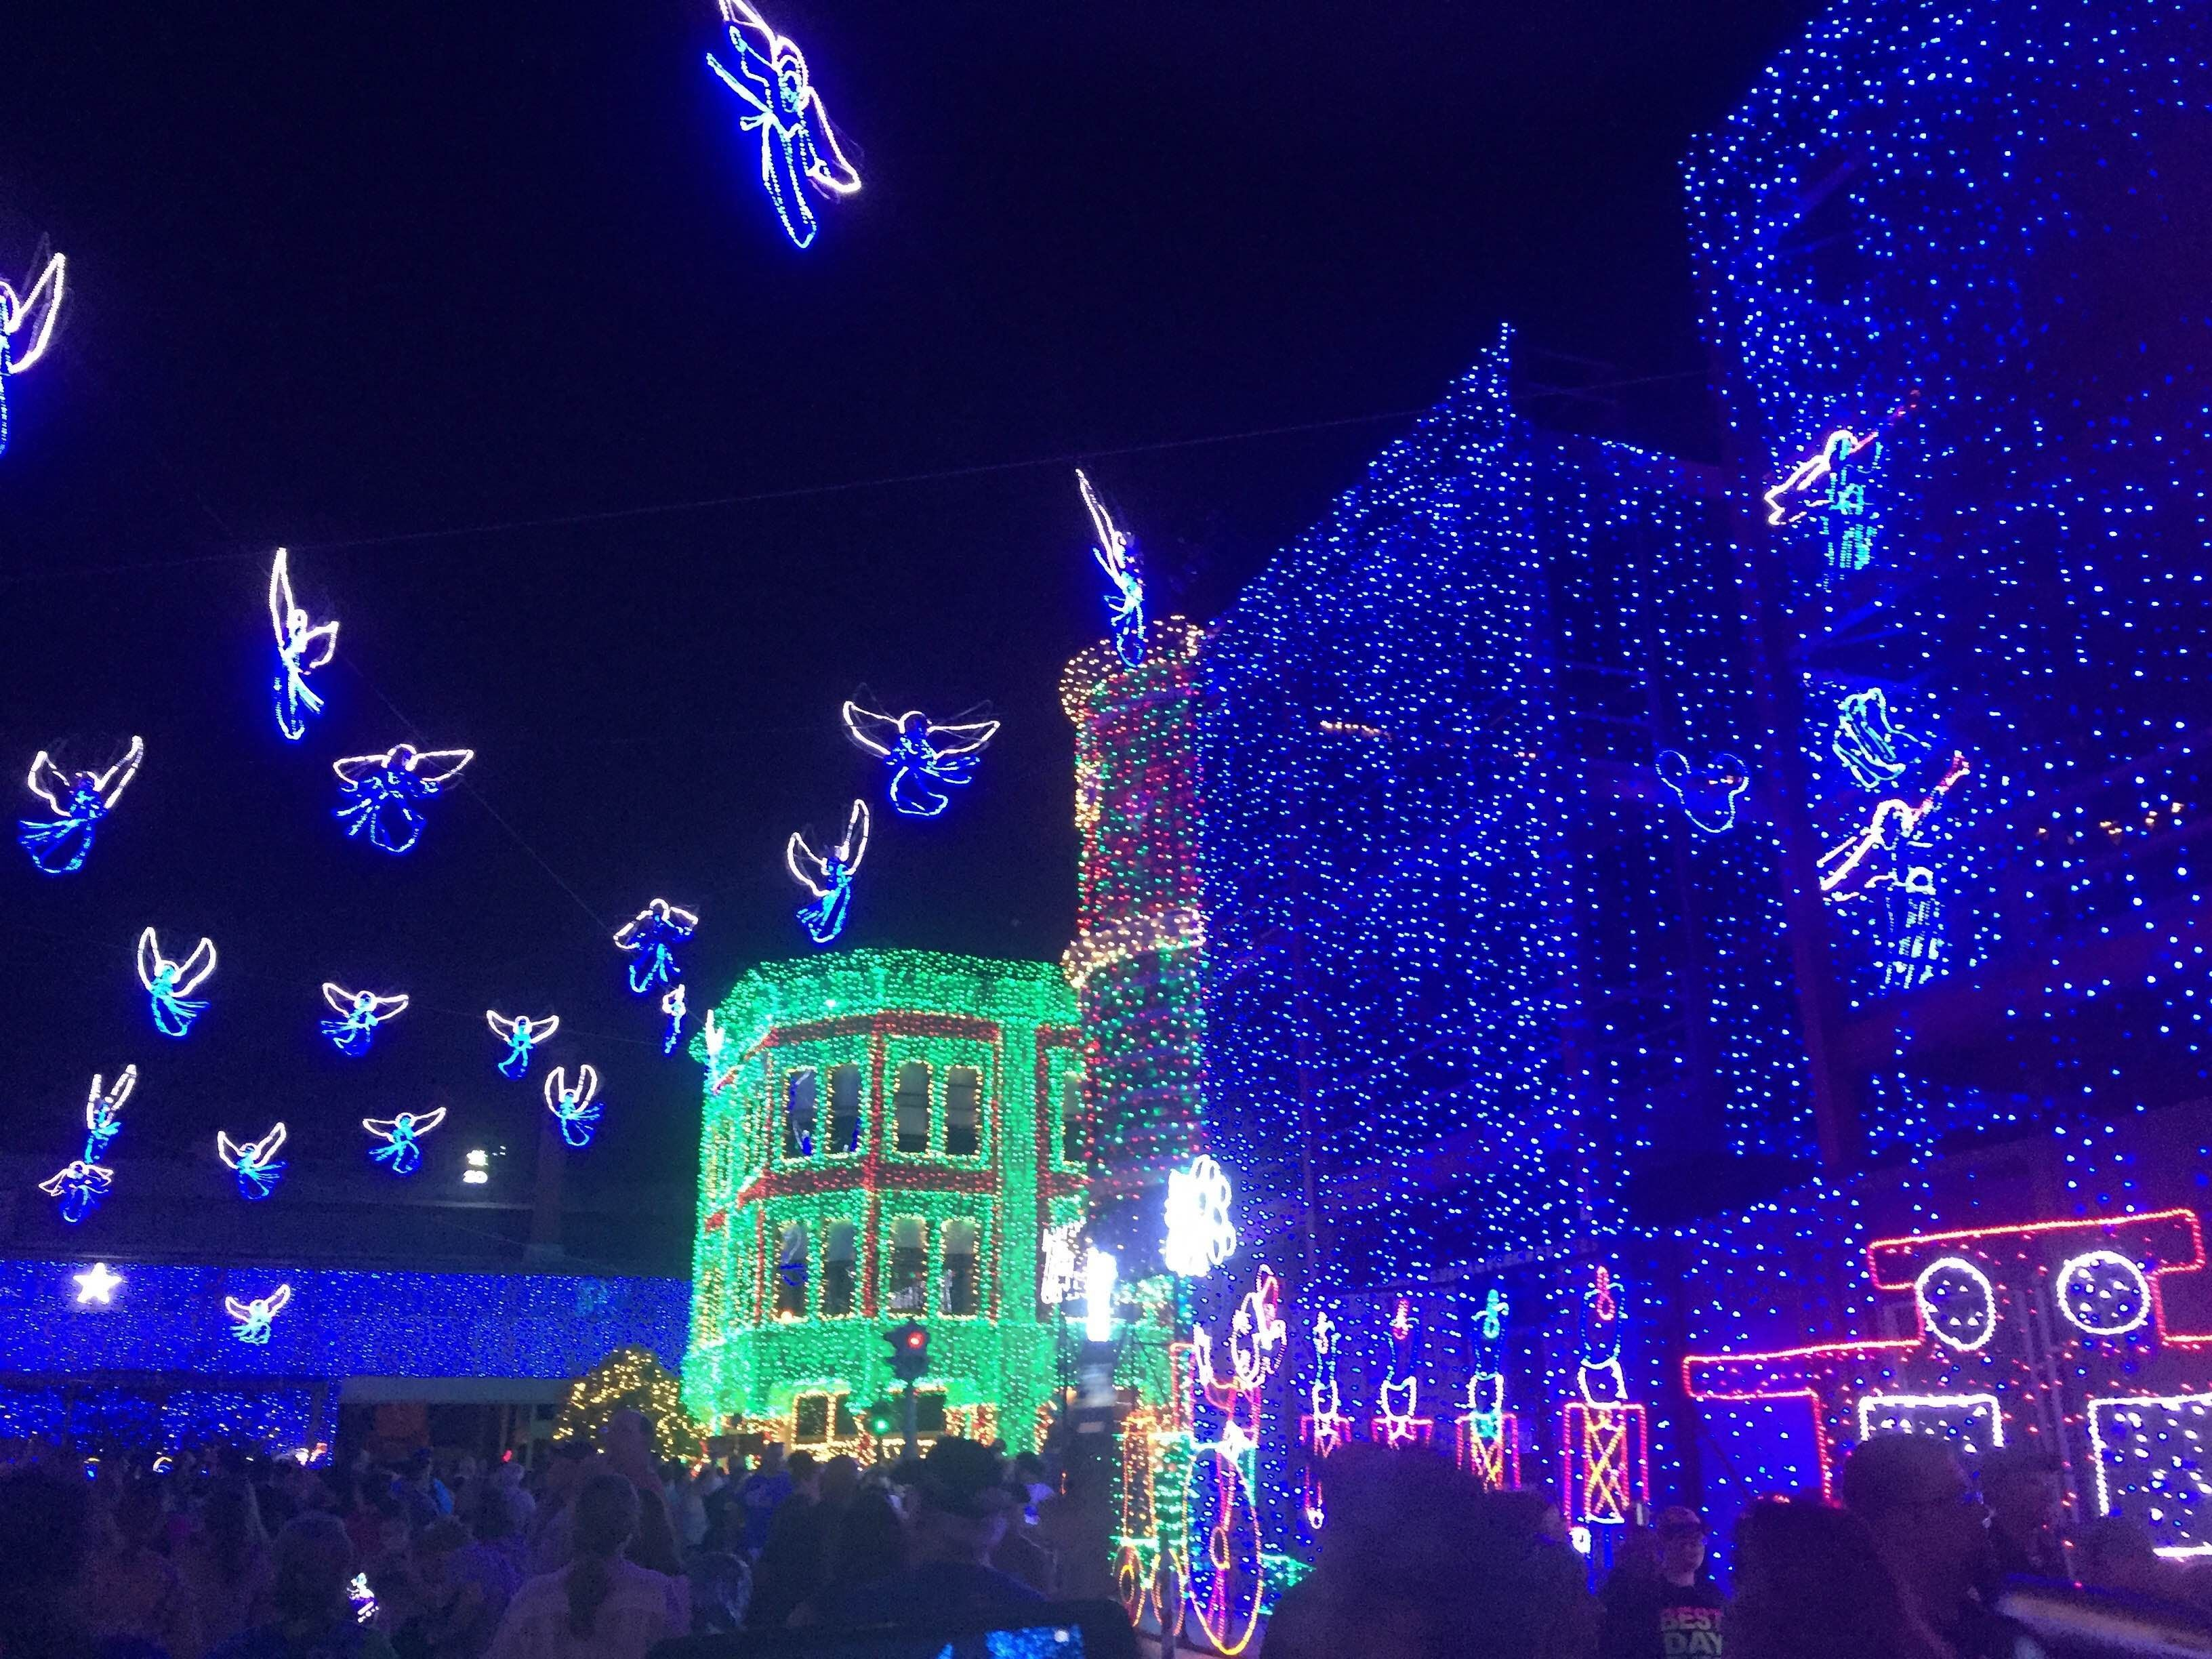 Luces de navidad en Disney's Hollywood Studios